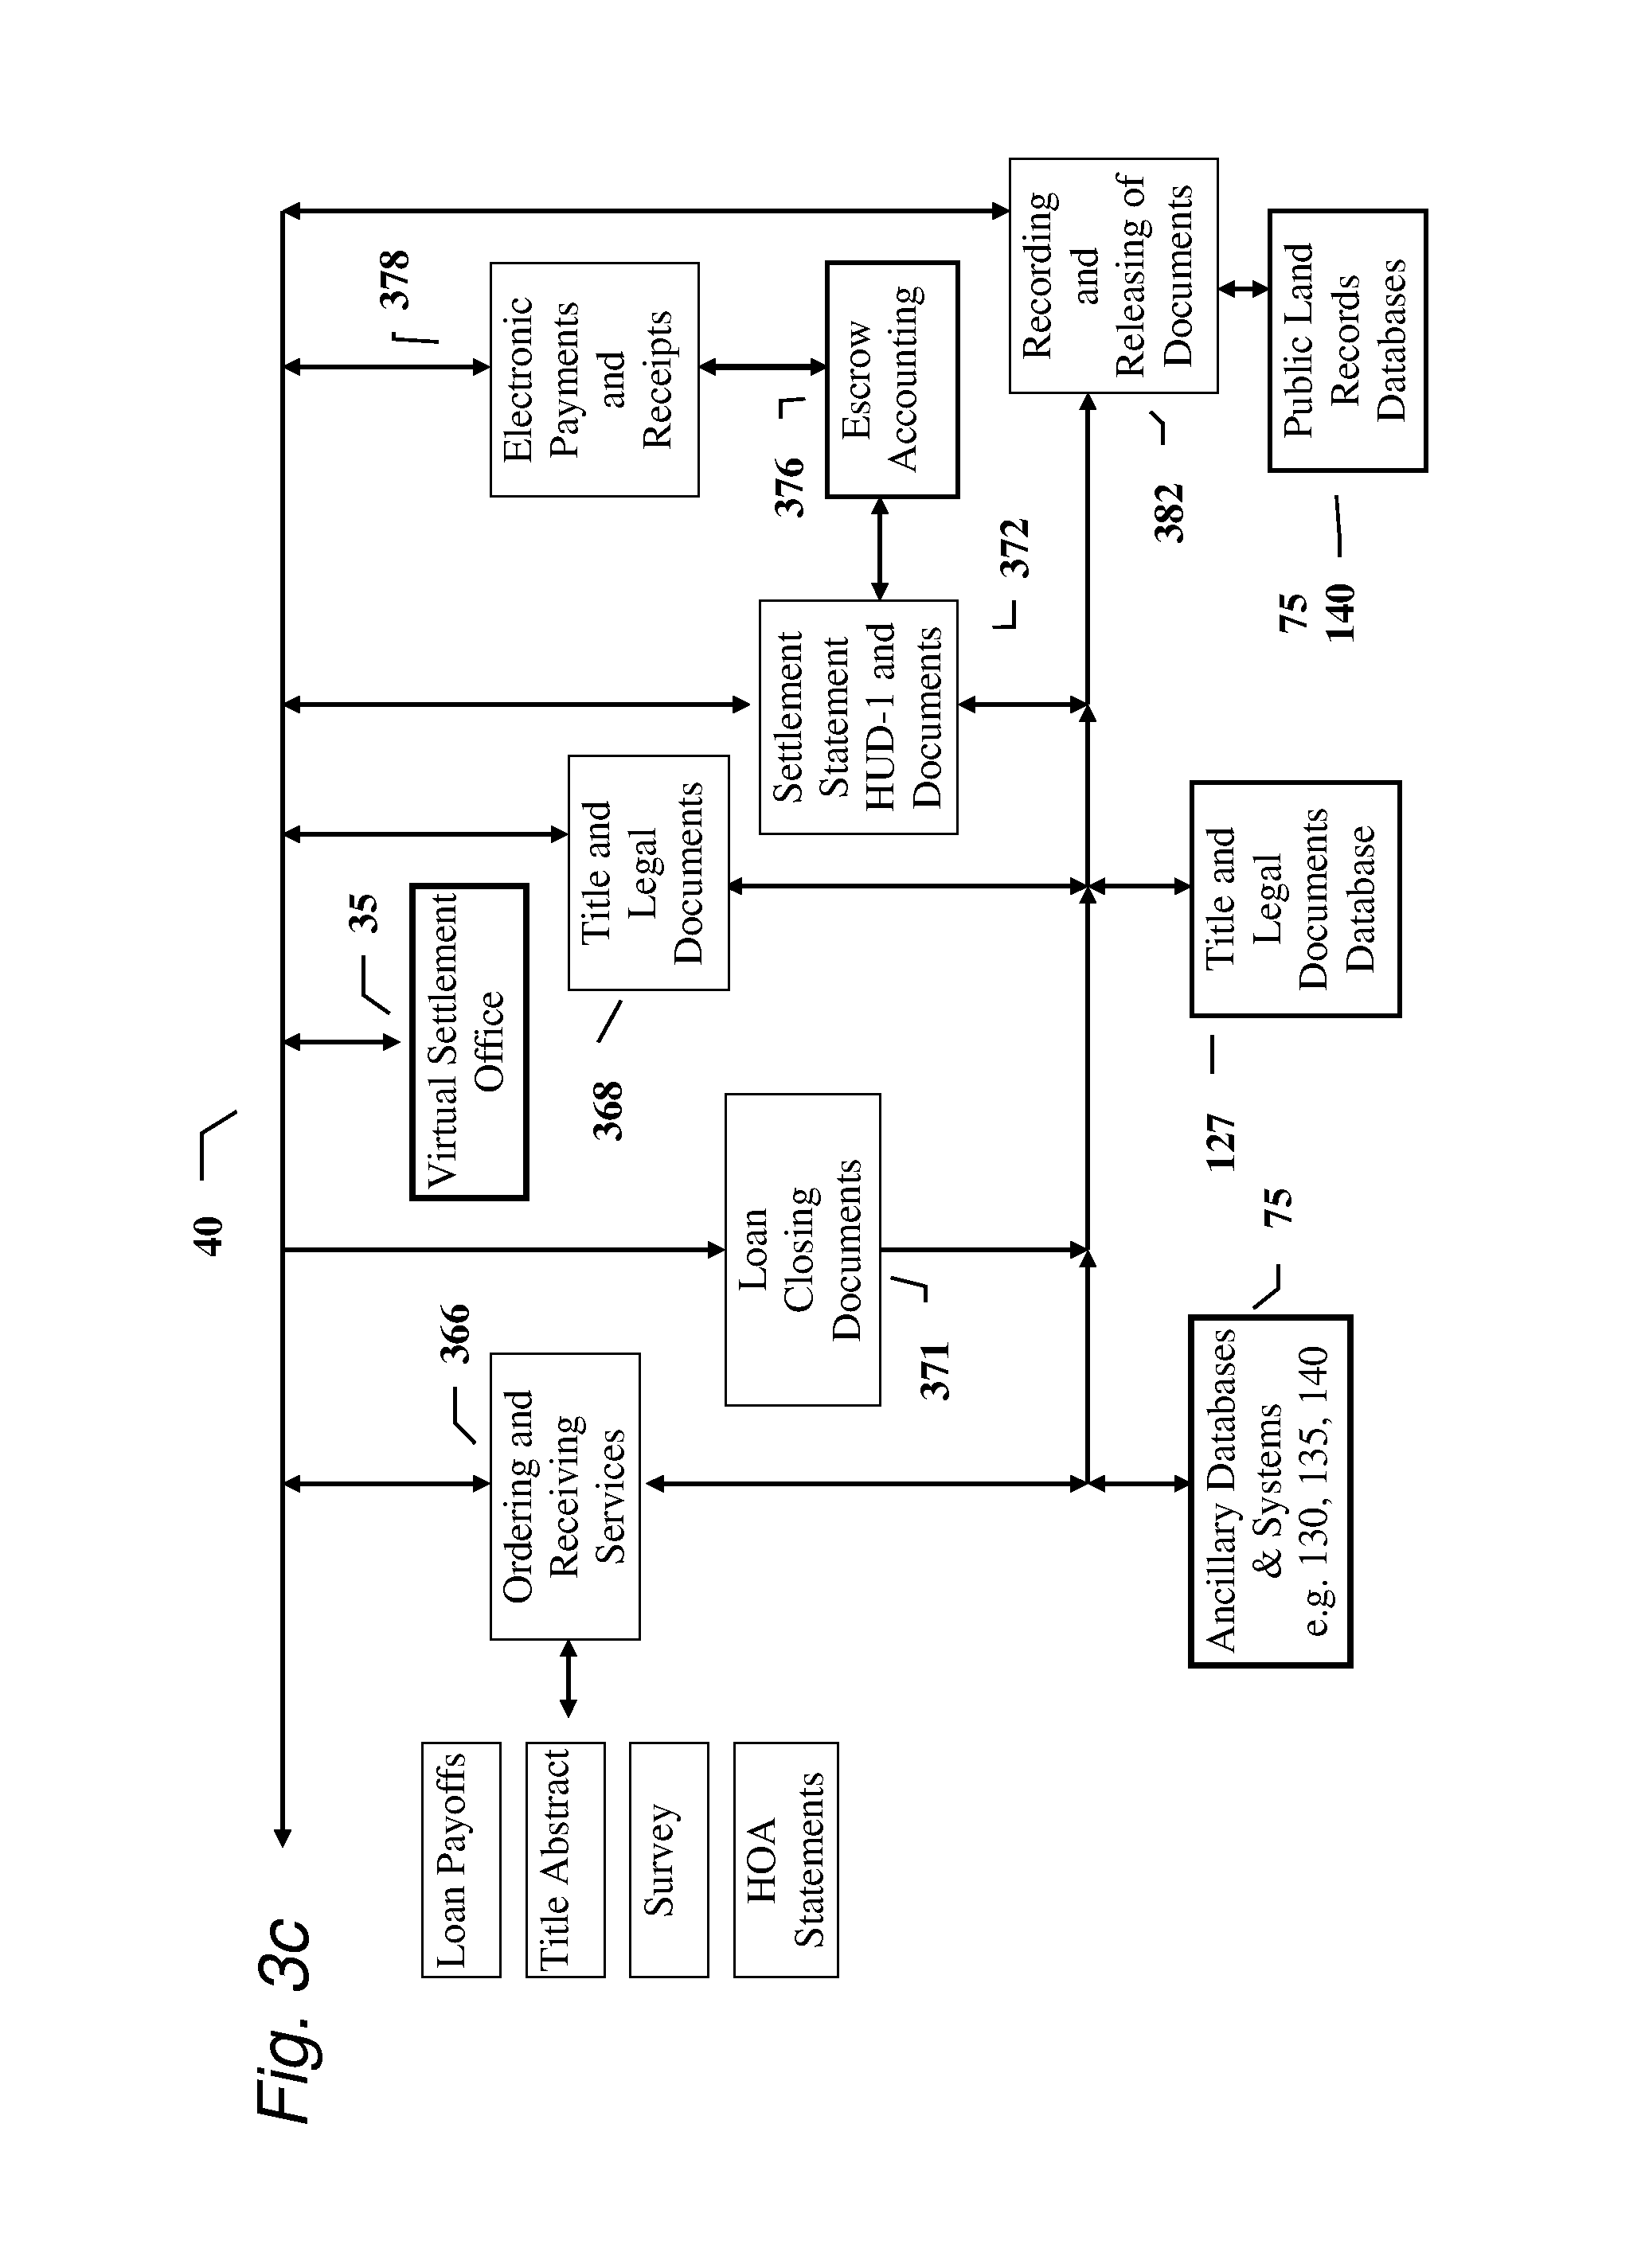 Patent Us8442906 Computerized Process To For Example Automate Everbank Wiring Instructions Drawing